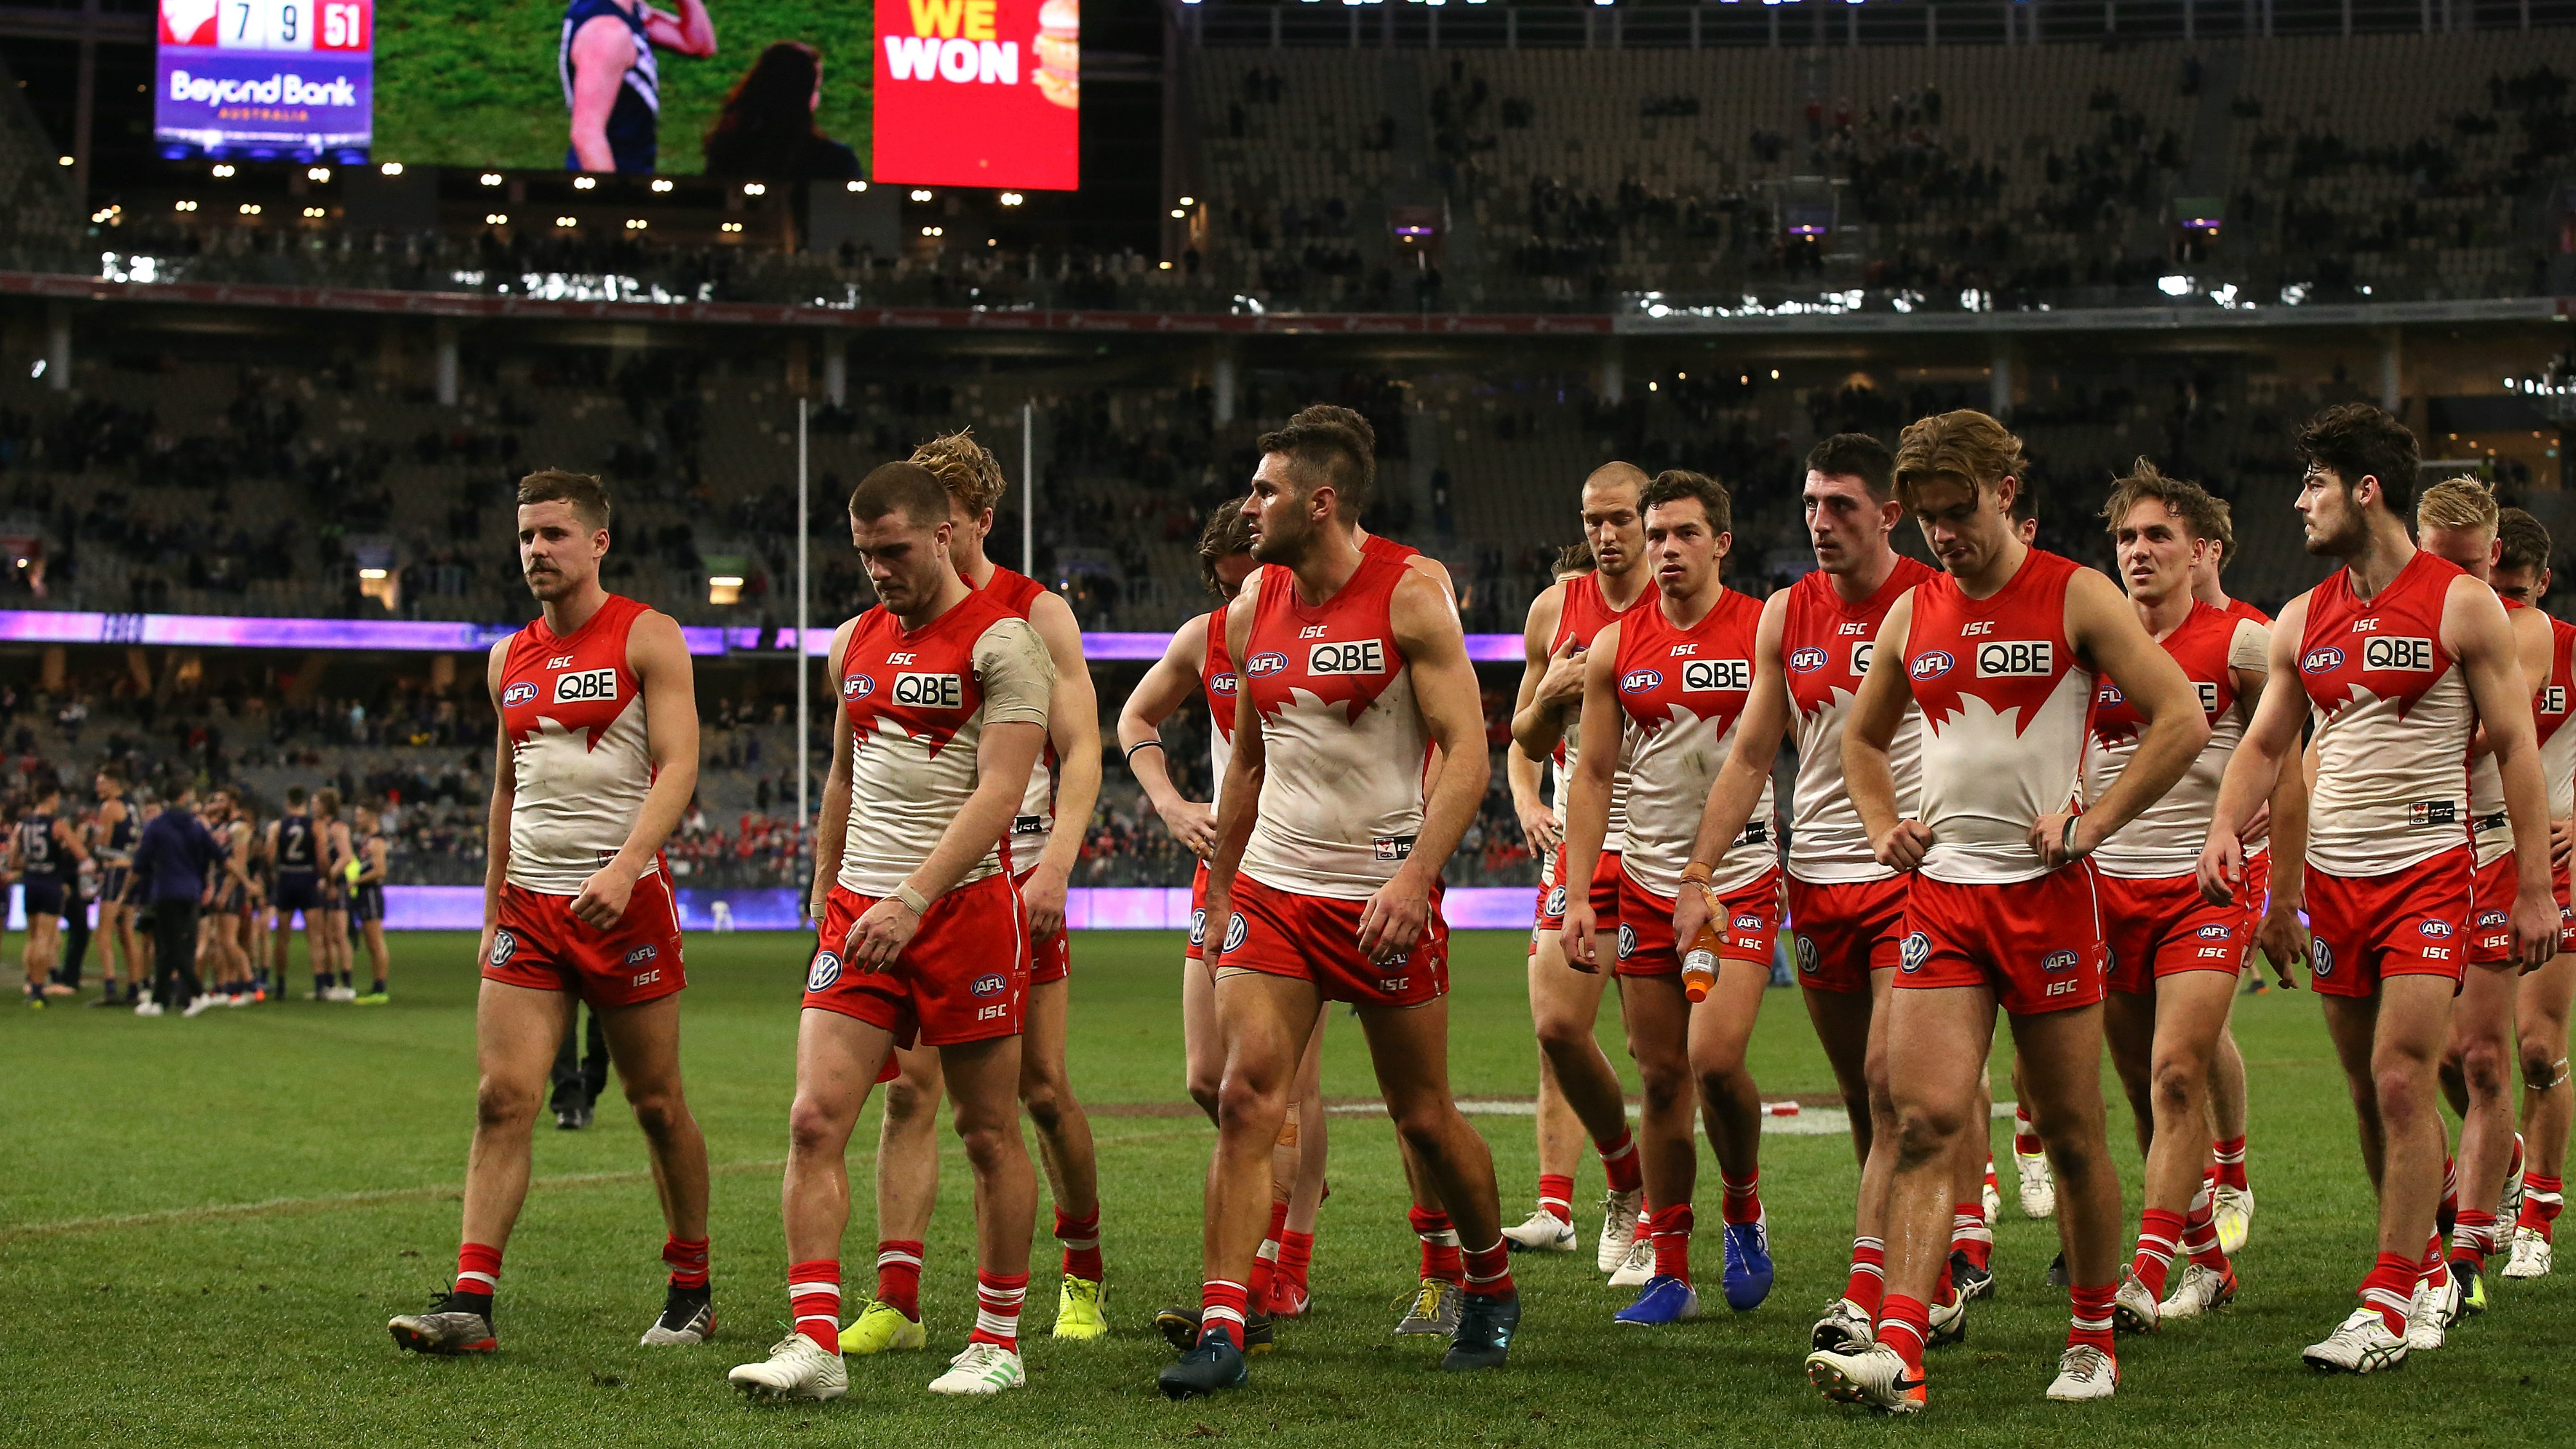 Sydney warn supporters against abusive comments after loss